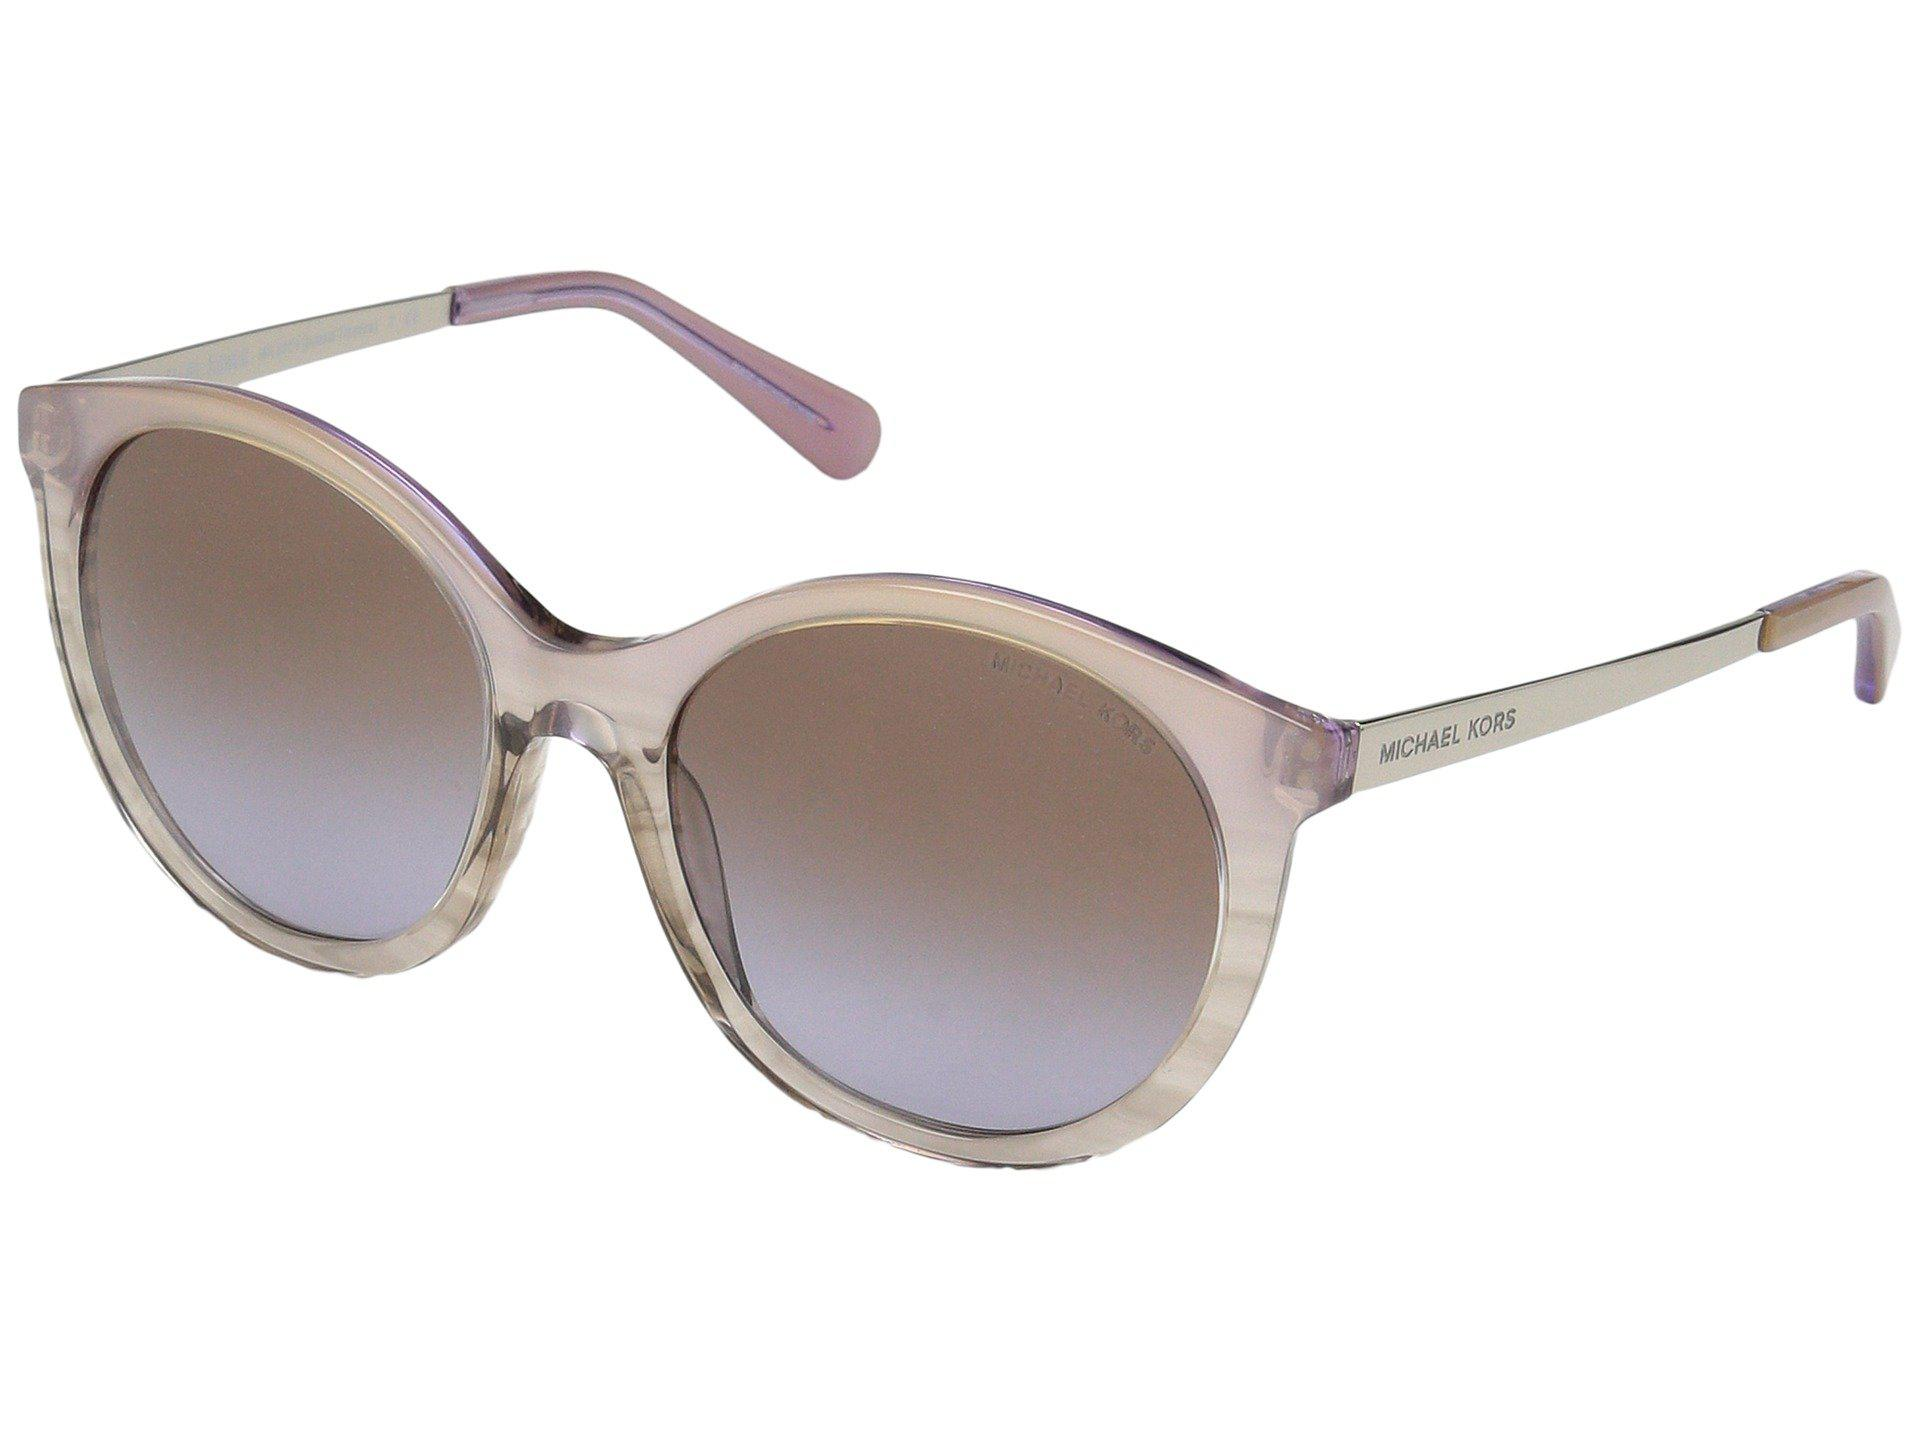 69d1b2e972306 Lyst - Michael Kors Island Tropics 0mk2034 55mm (multicolor Purple ...